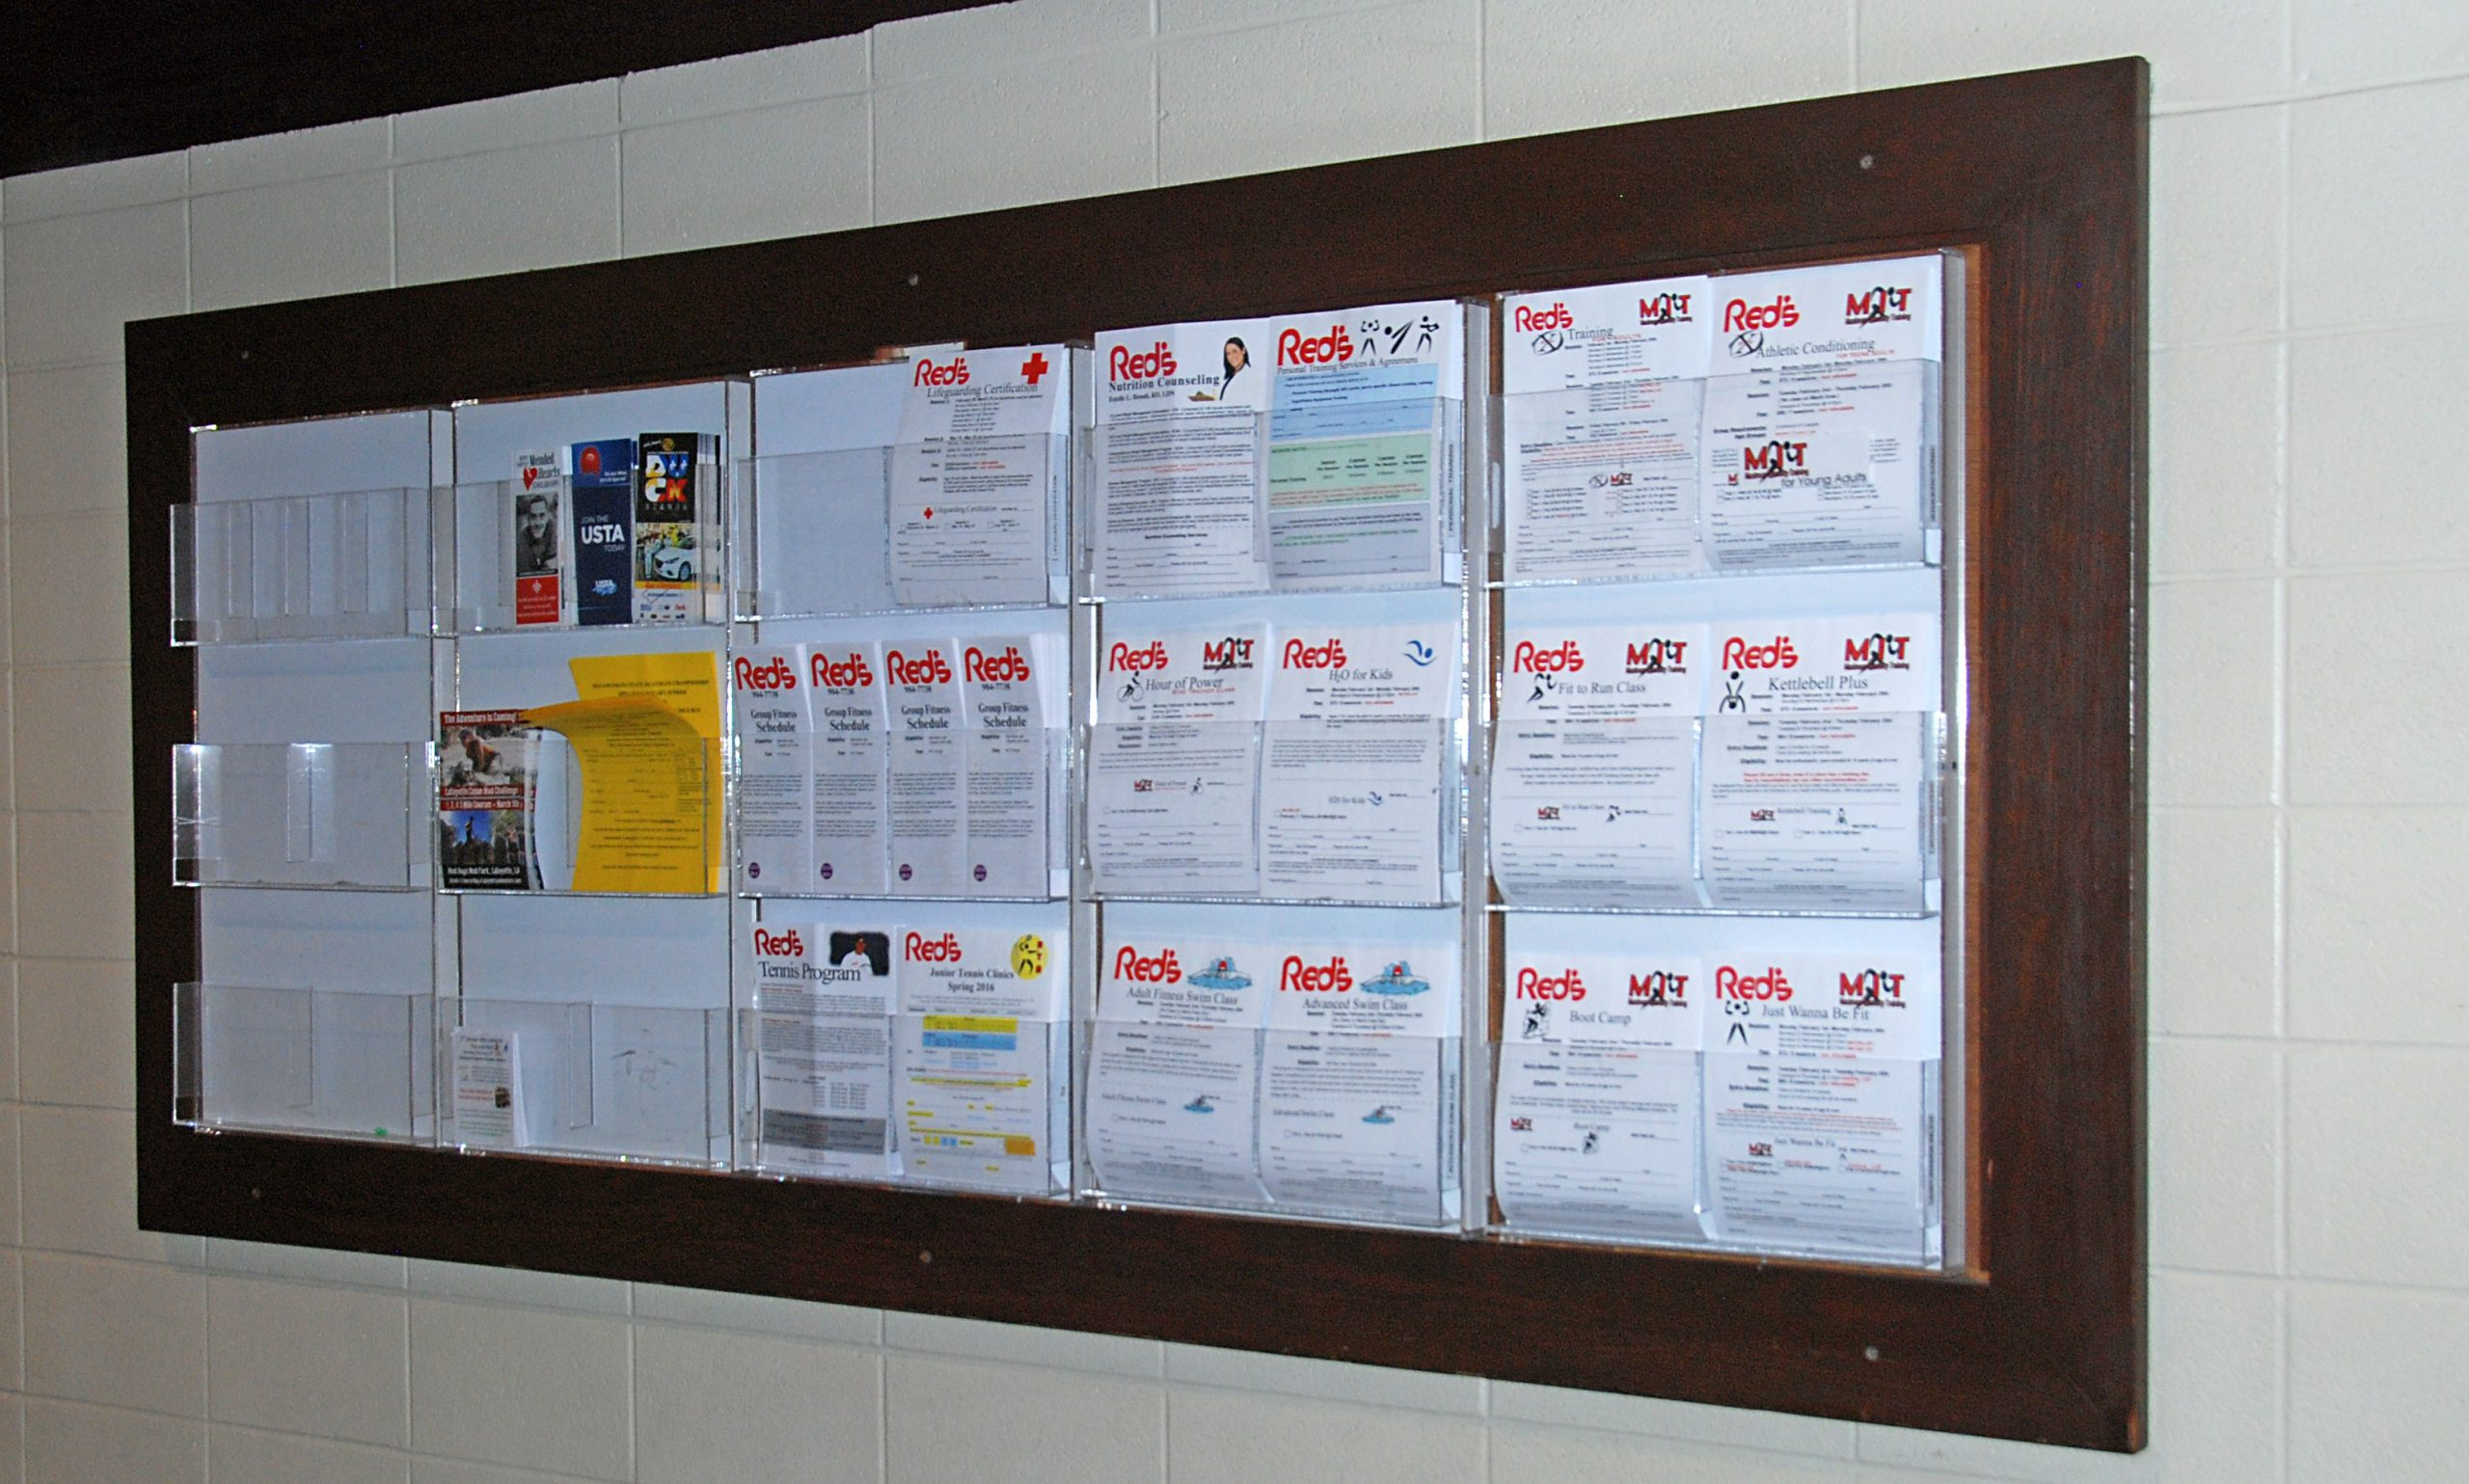 Registration forms for programs at Red's in Lafayette, LA.